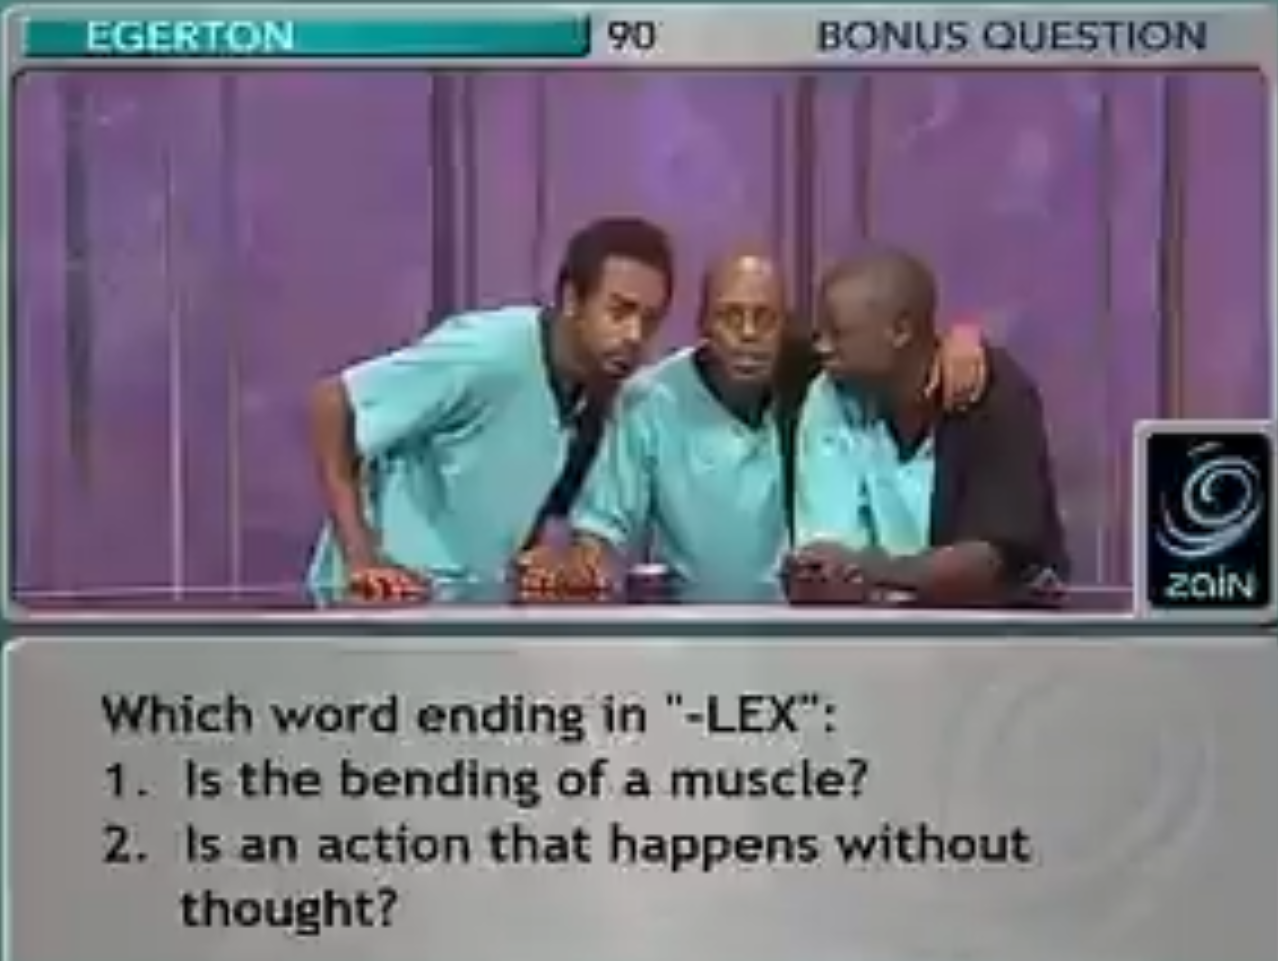 Can you answer the first question?